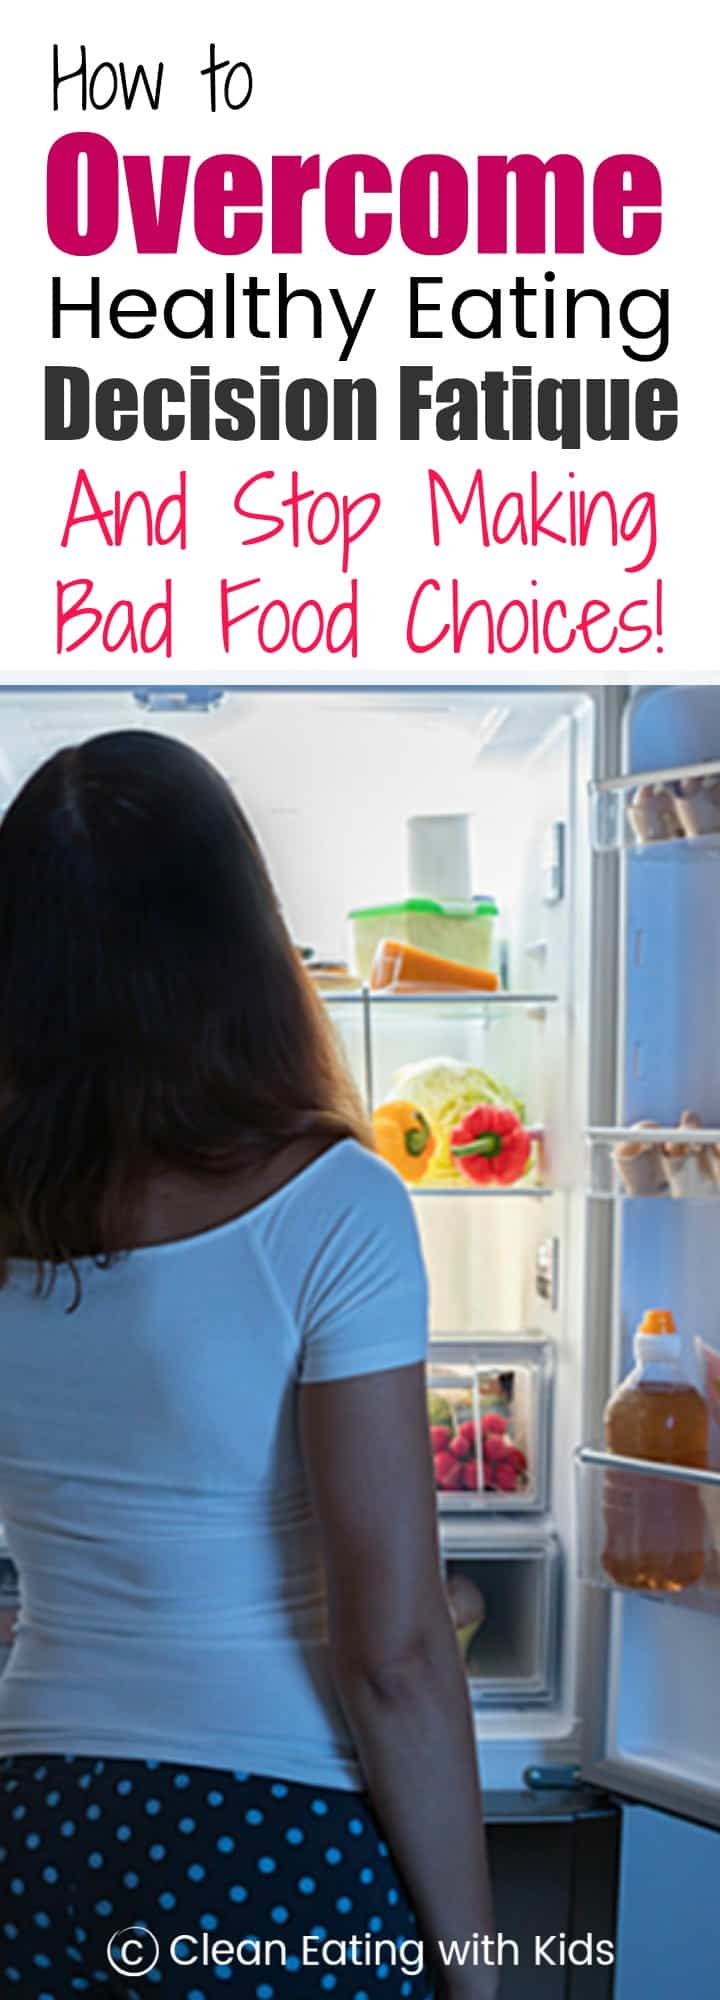 Two Ways to Overcome Healthy Eating Decision Fatigue and STOP Making bad Food Choices.